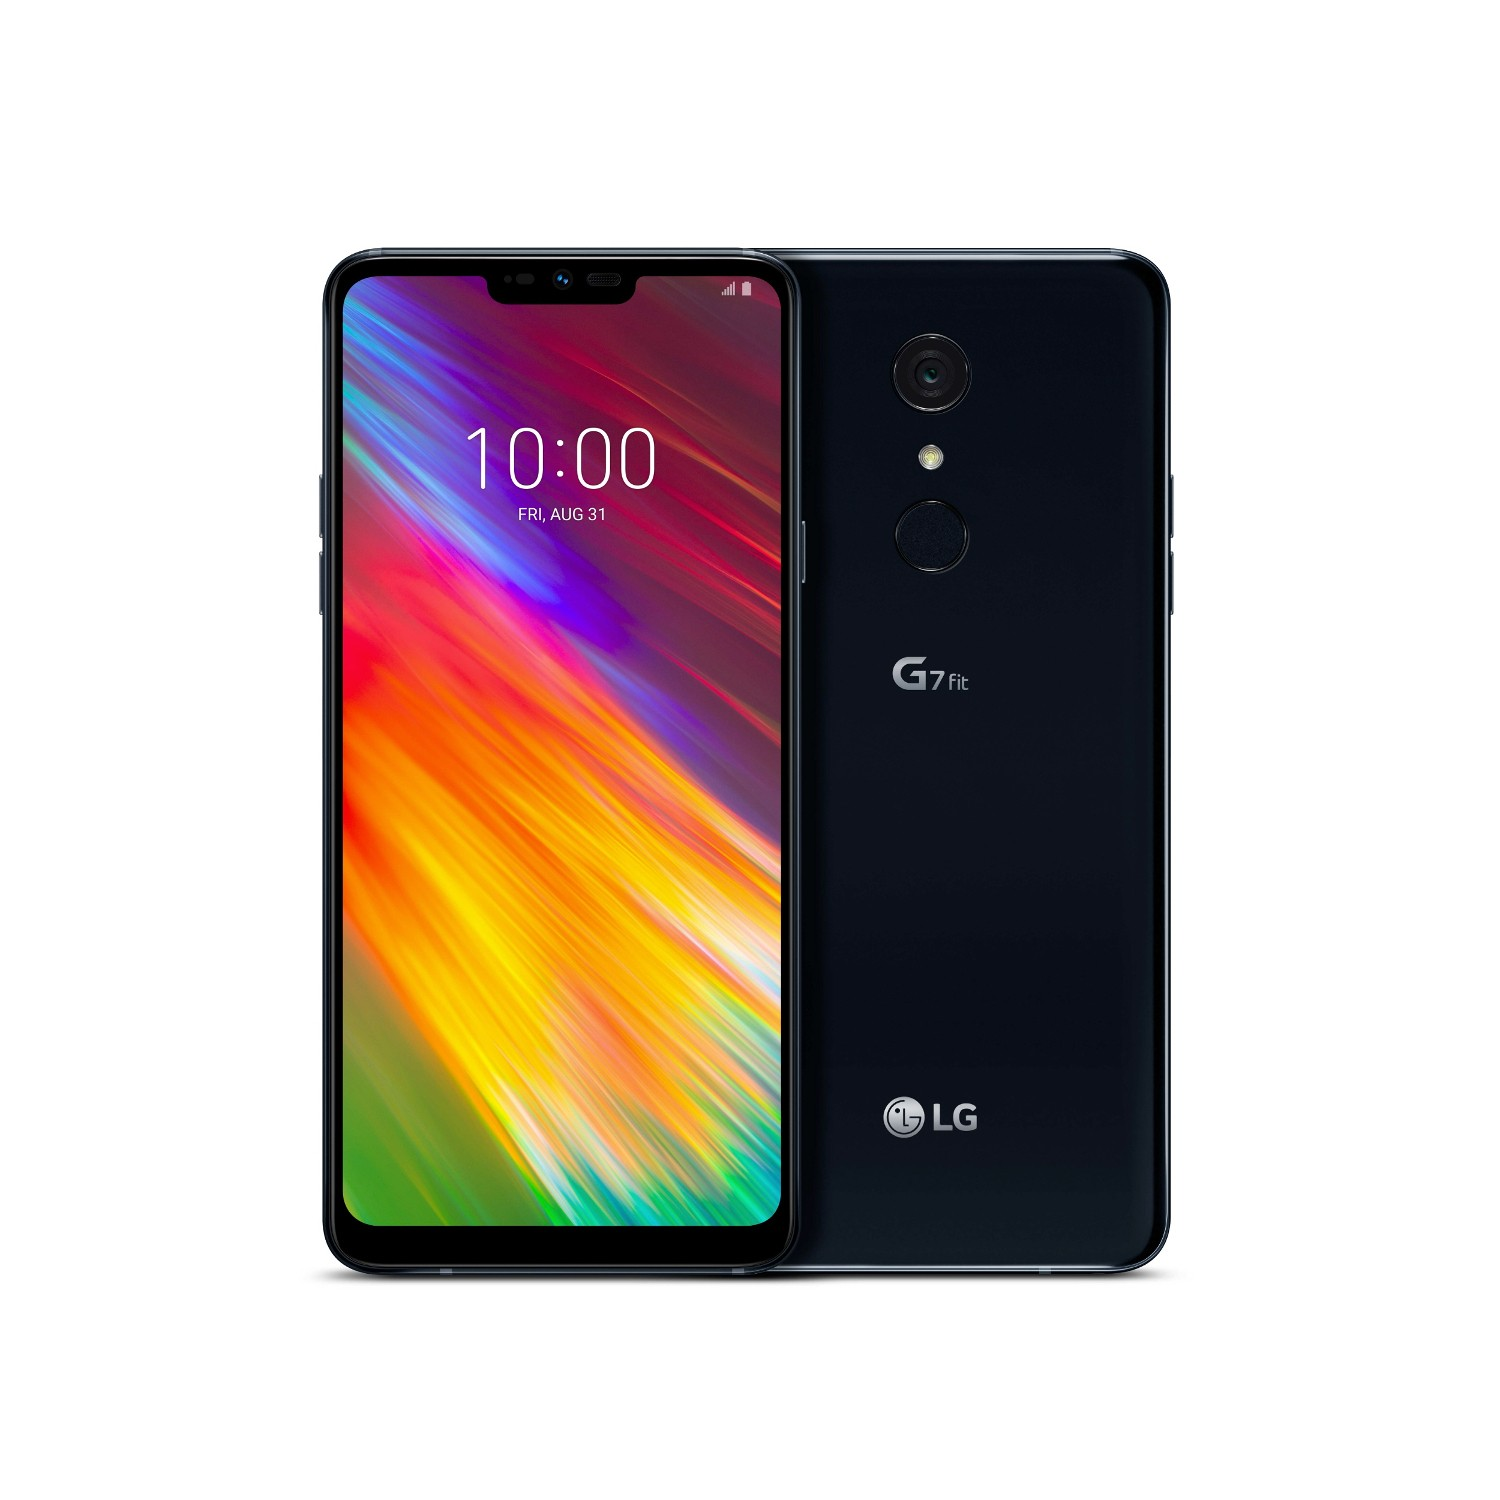 lg builds on successful g7 series platform with two even more accessible models lg newsroom. Black Bedroom Furniture Sets. Home Design Ideas